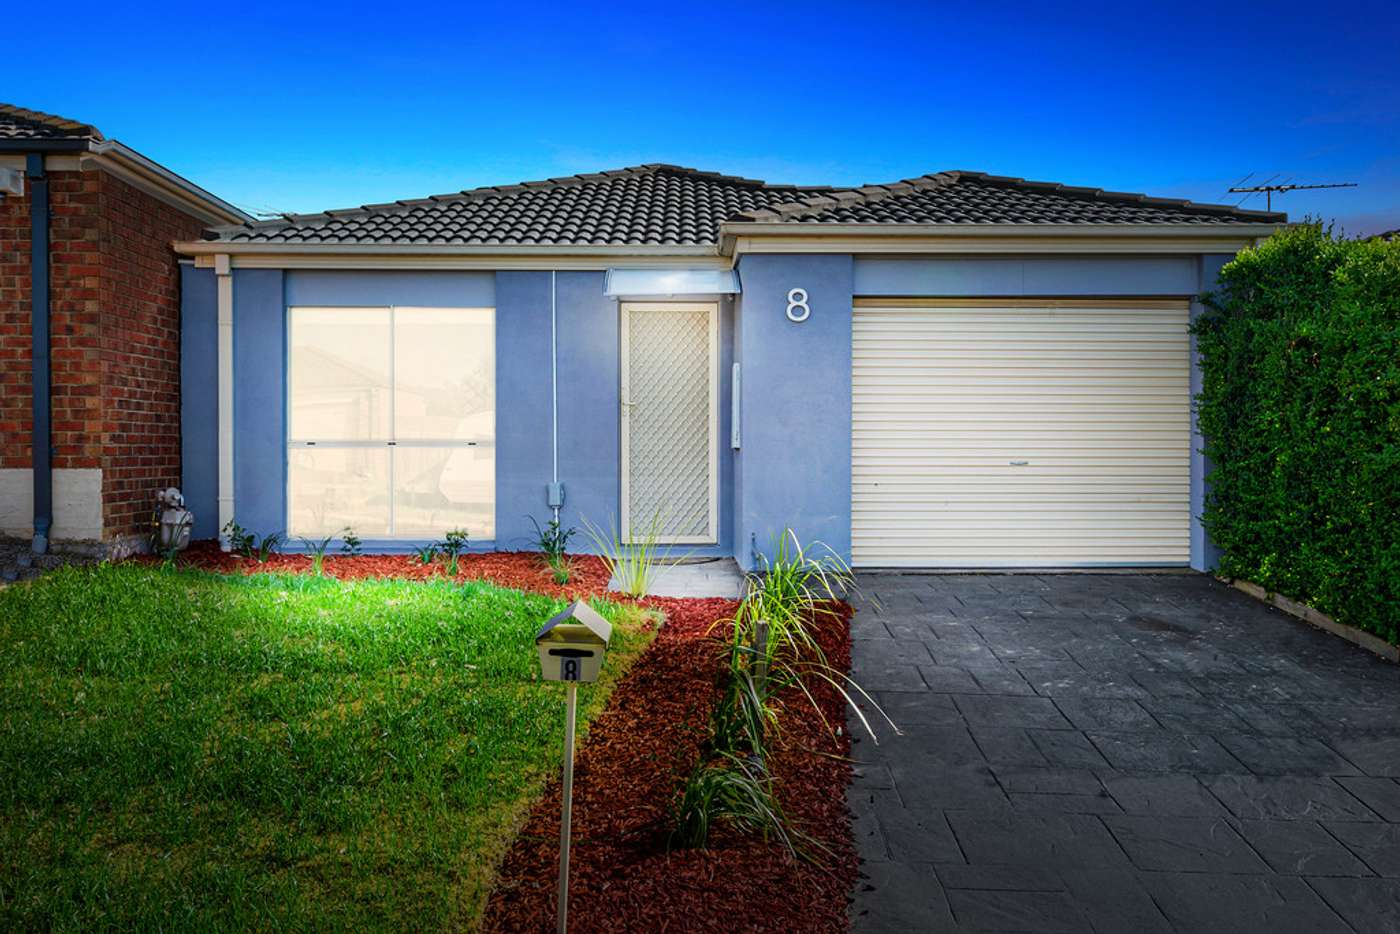 Main view of Homely house listing, 8 Jolley Rise, Harkness VIC 3337